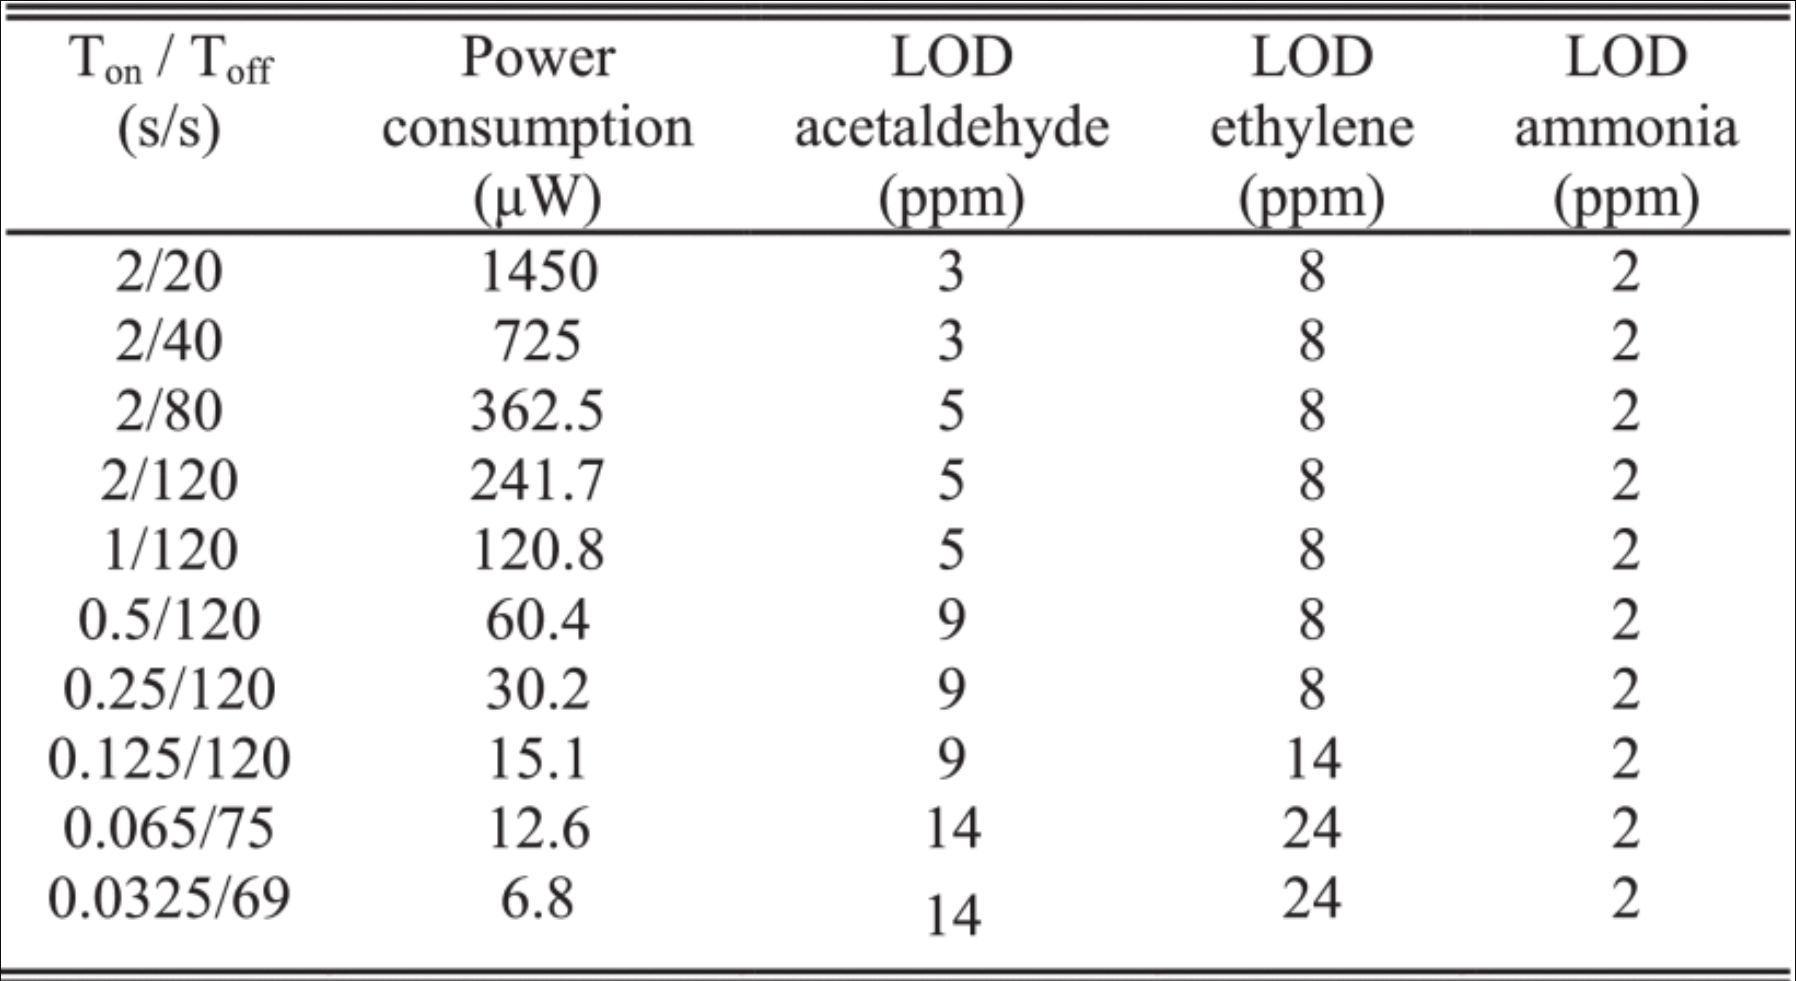 LOD versus power consumption